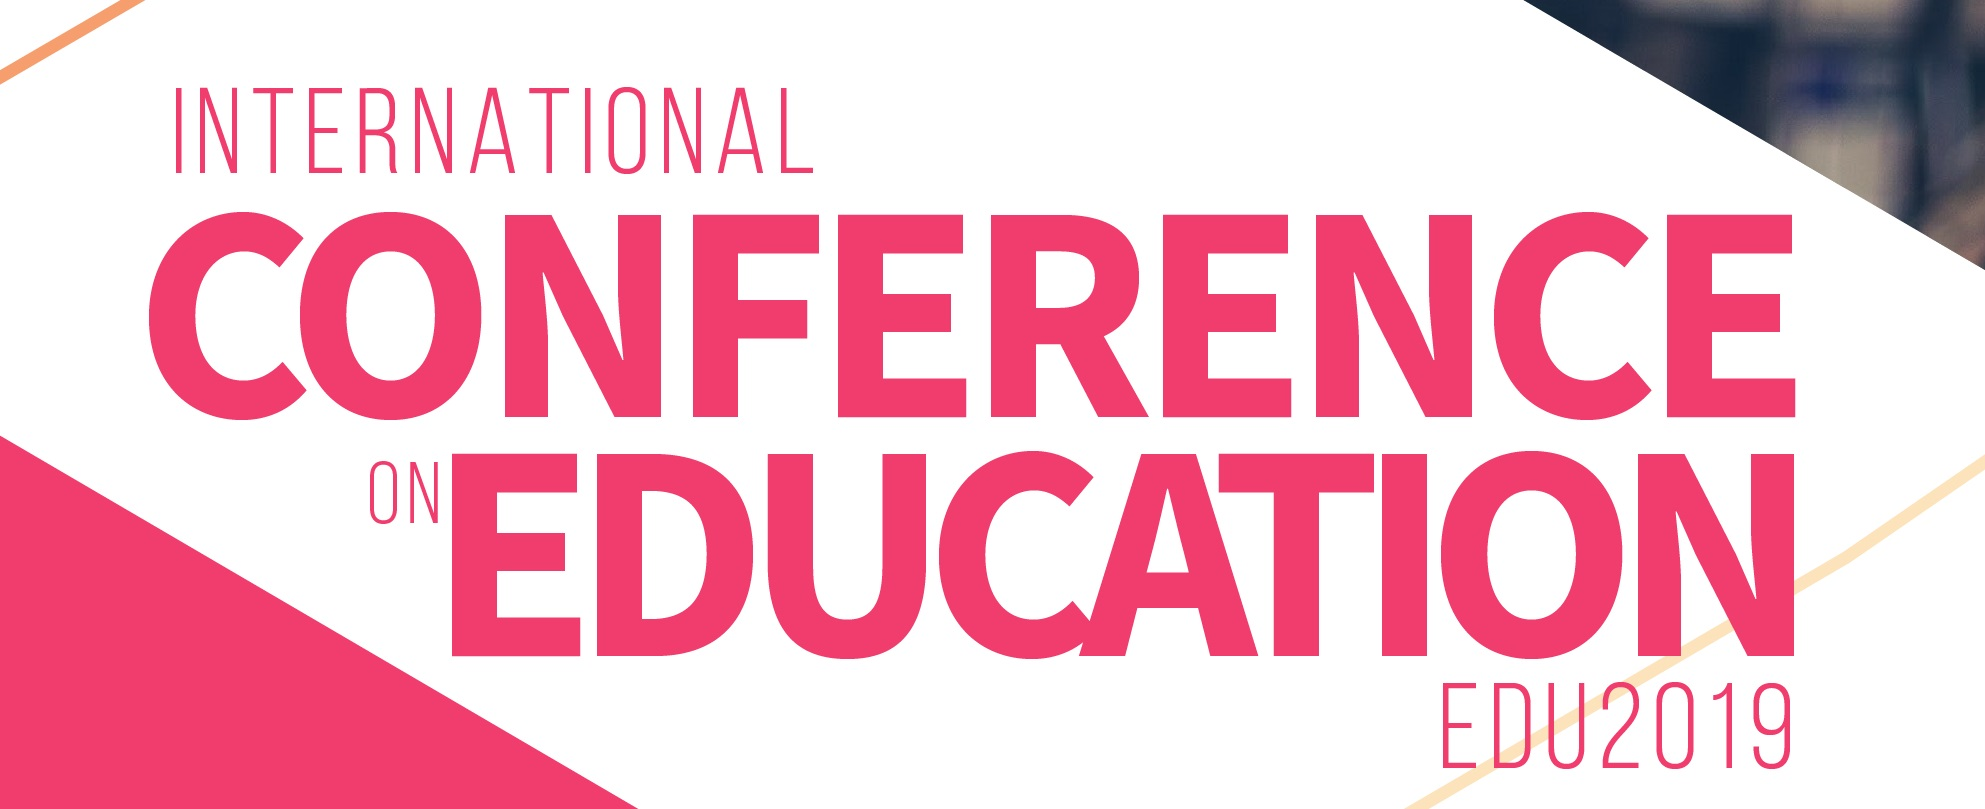 International Conference on Education (EDU2019), Athens, Attica, Greece